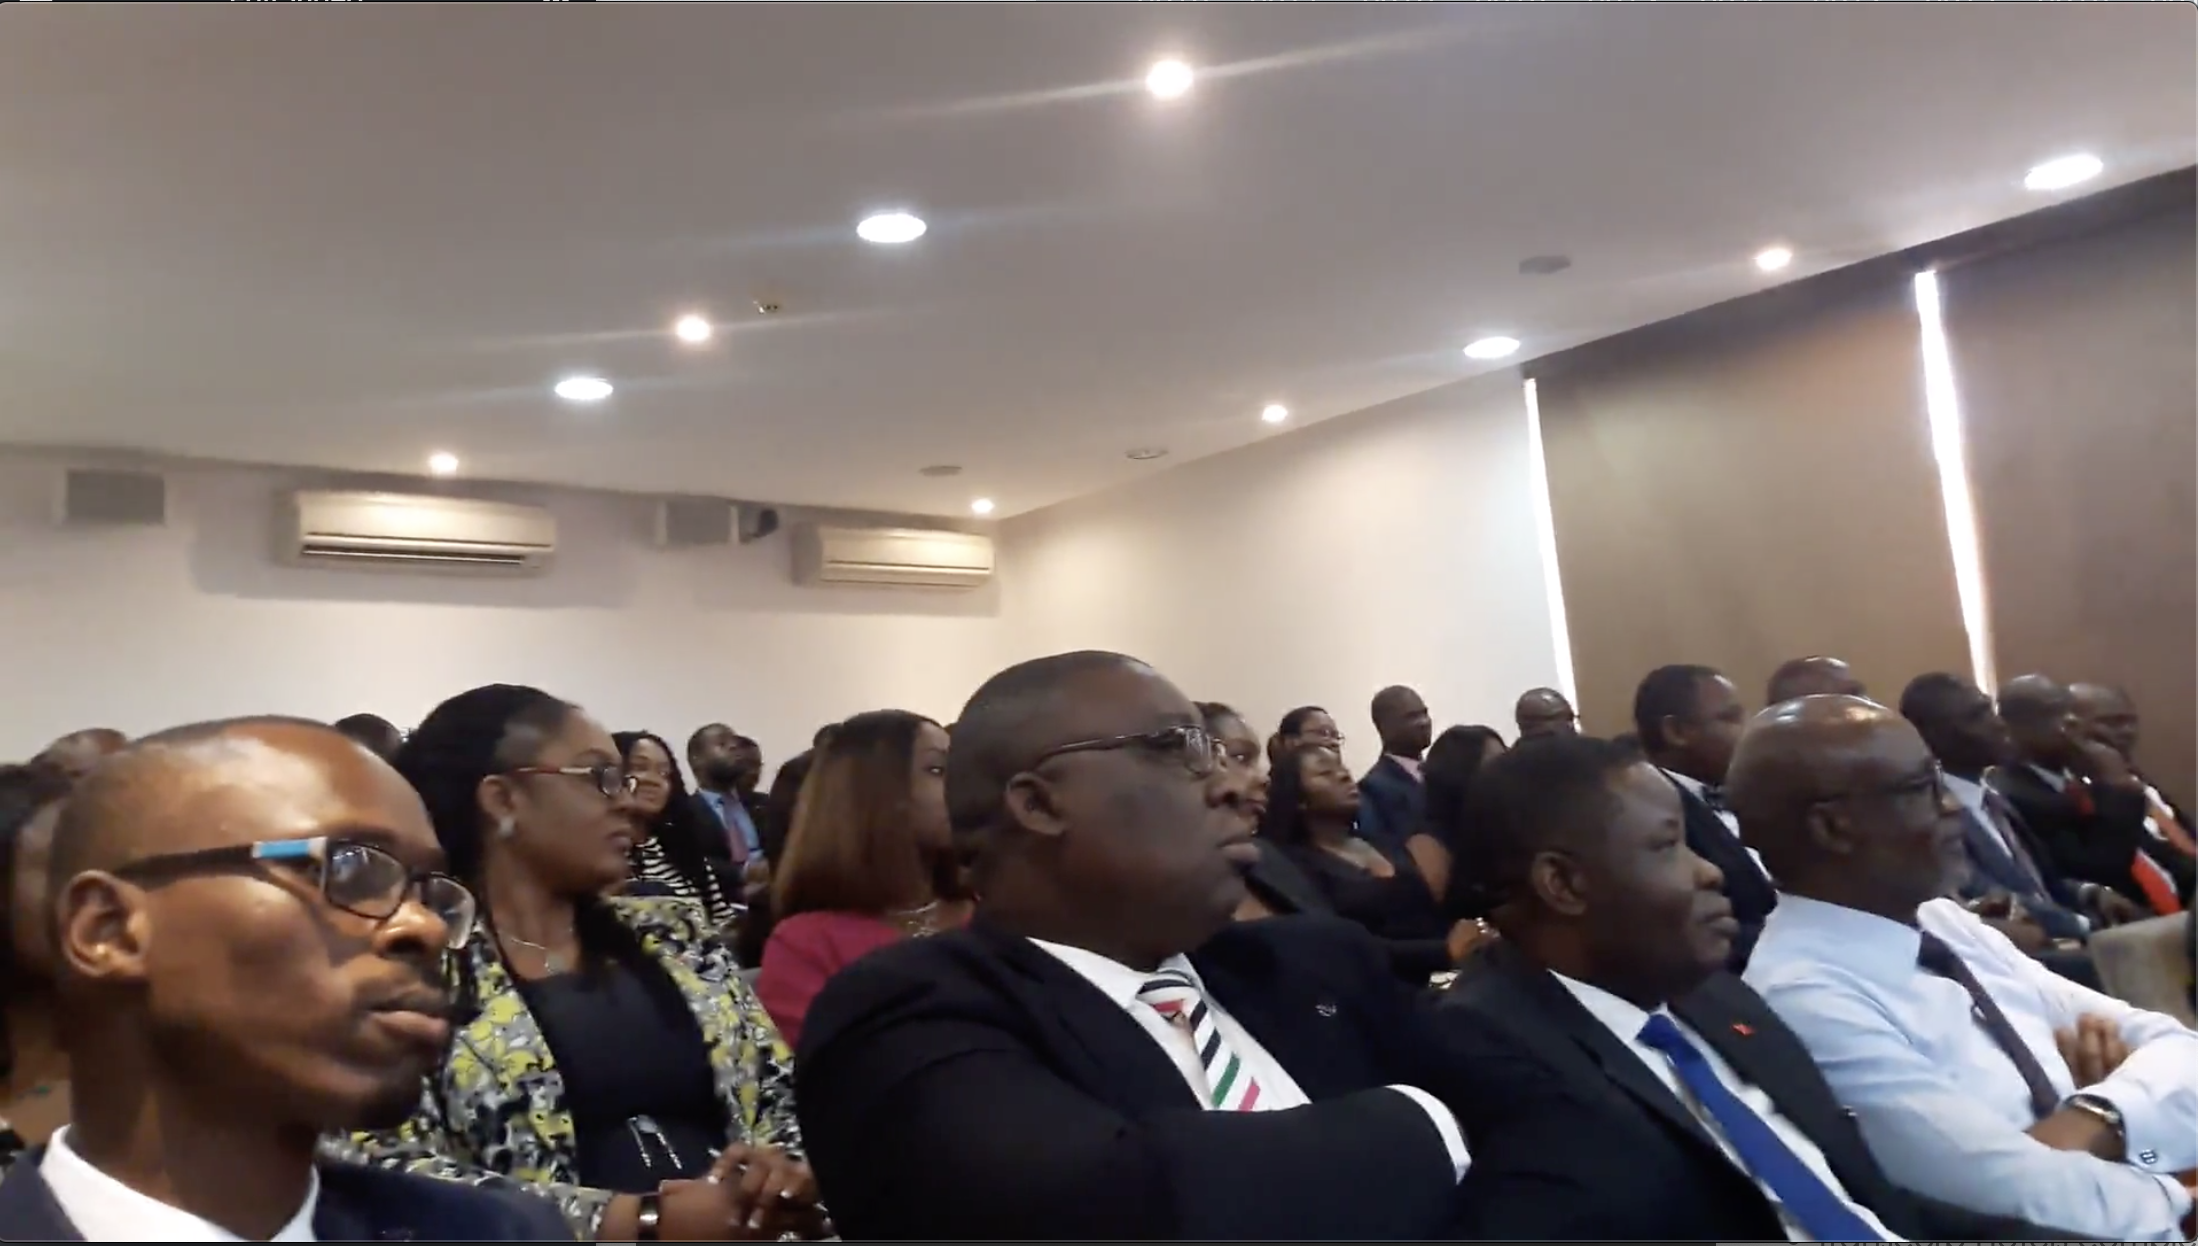 Heirs Holdings Knowledge Sharing Session in 2018